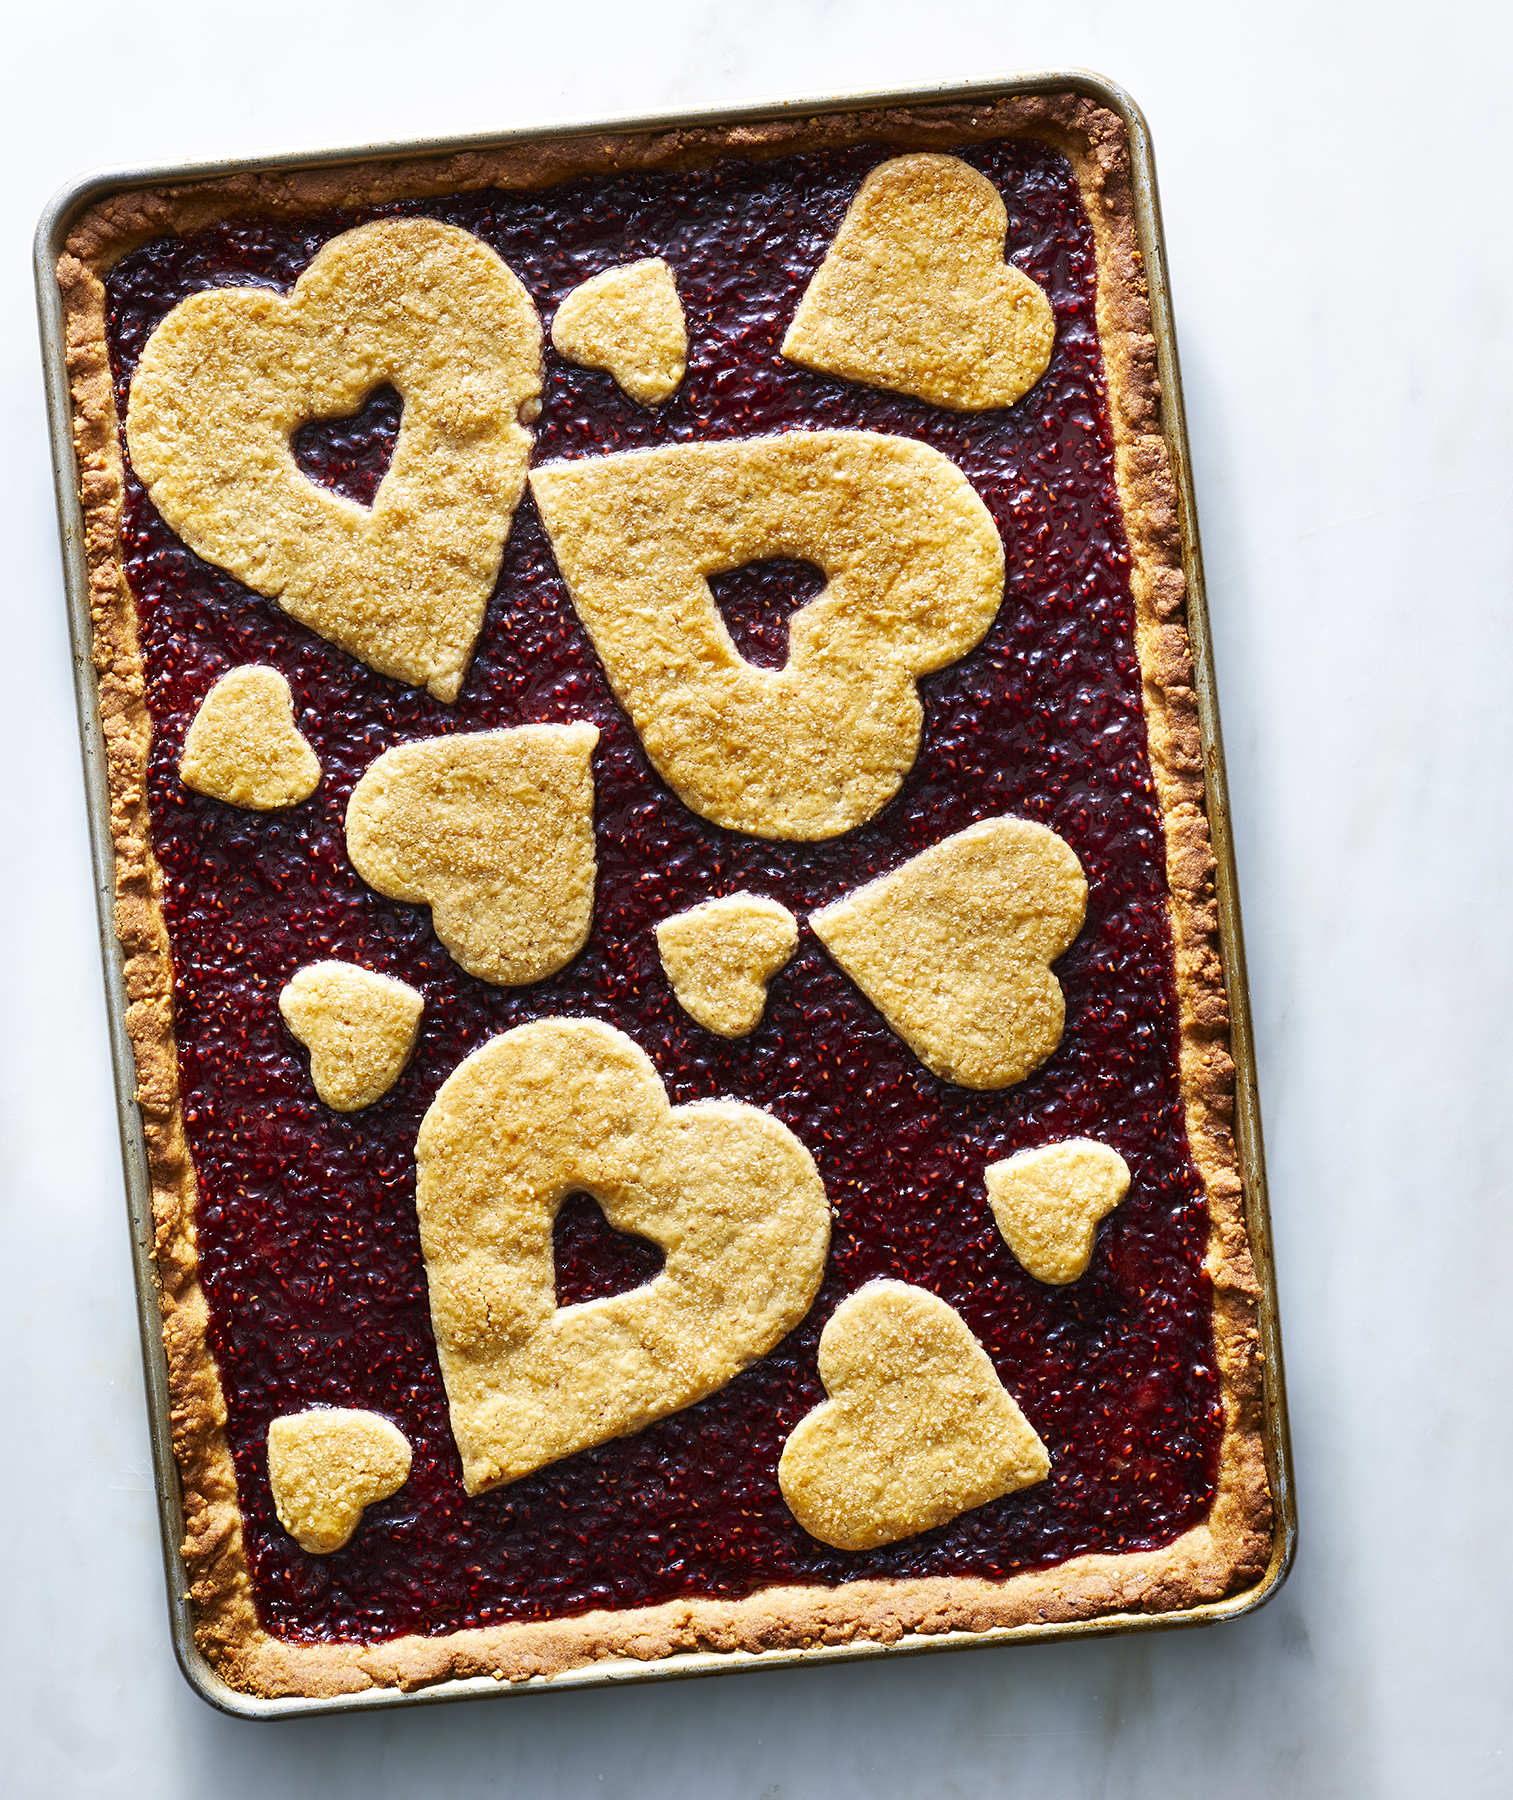 We Just Discovered Sheet Pan Desserts and We're Officially in Love